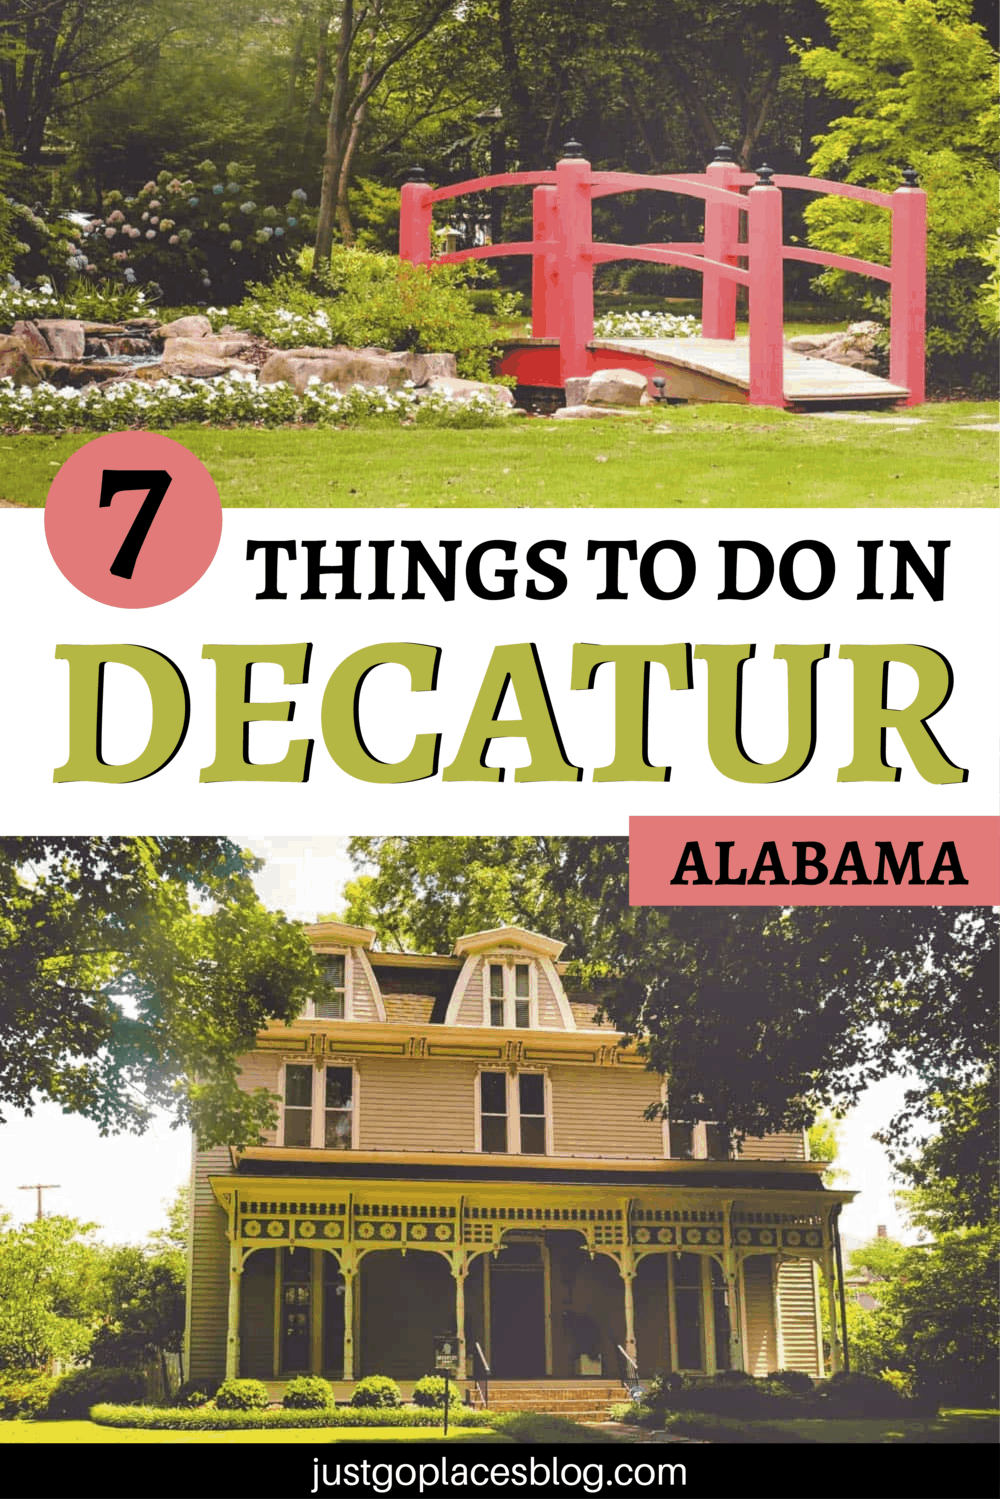 7 things to do in decatur alabama